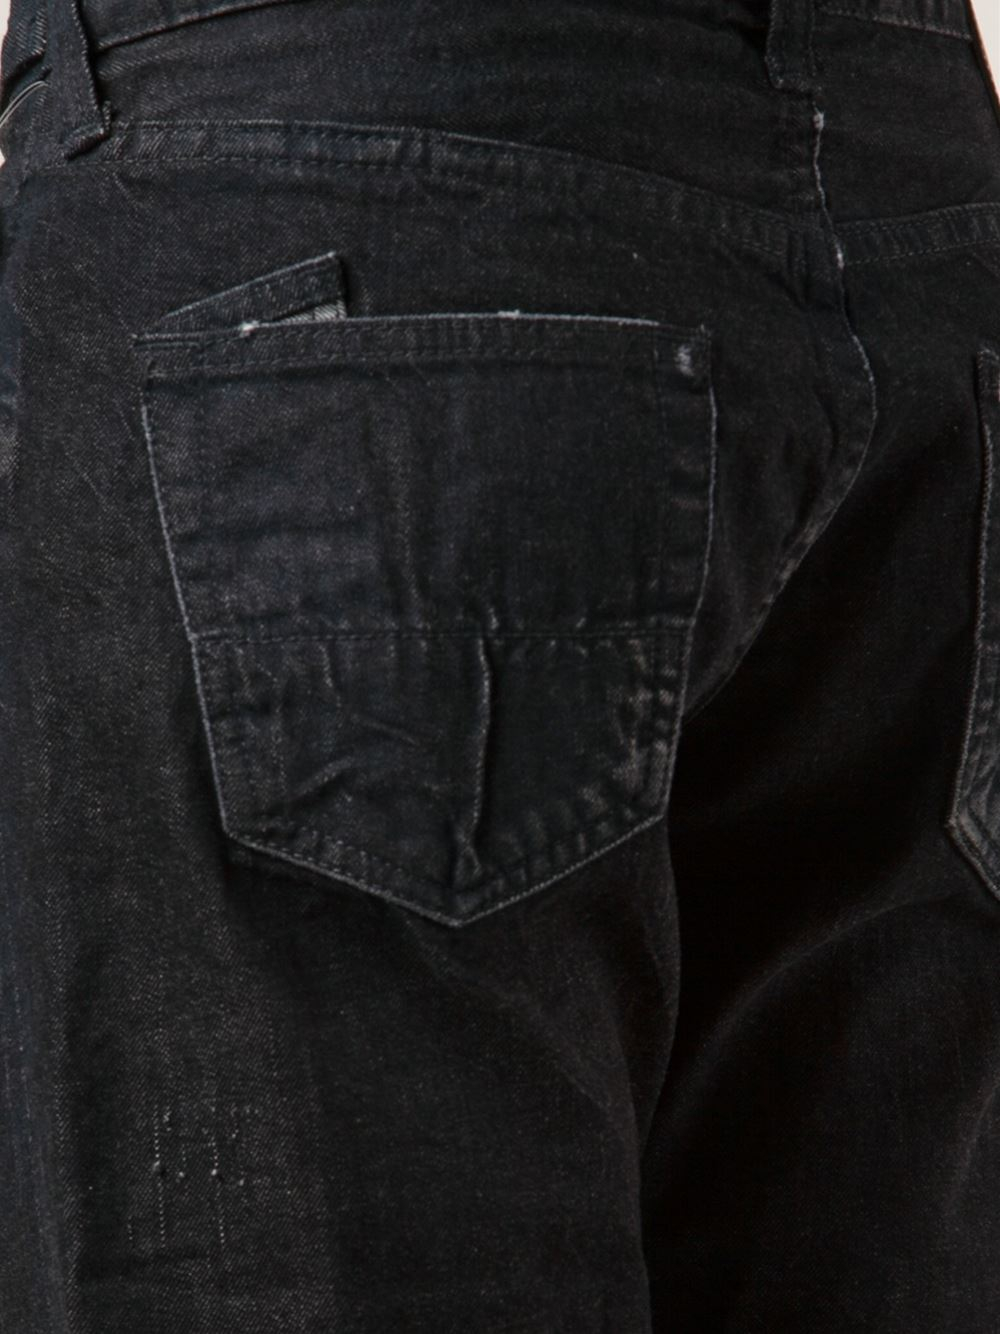 PRPS Barracuda Jeans in Black for Men